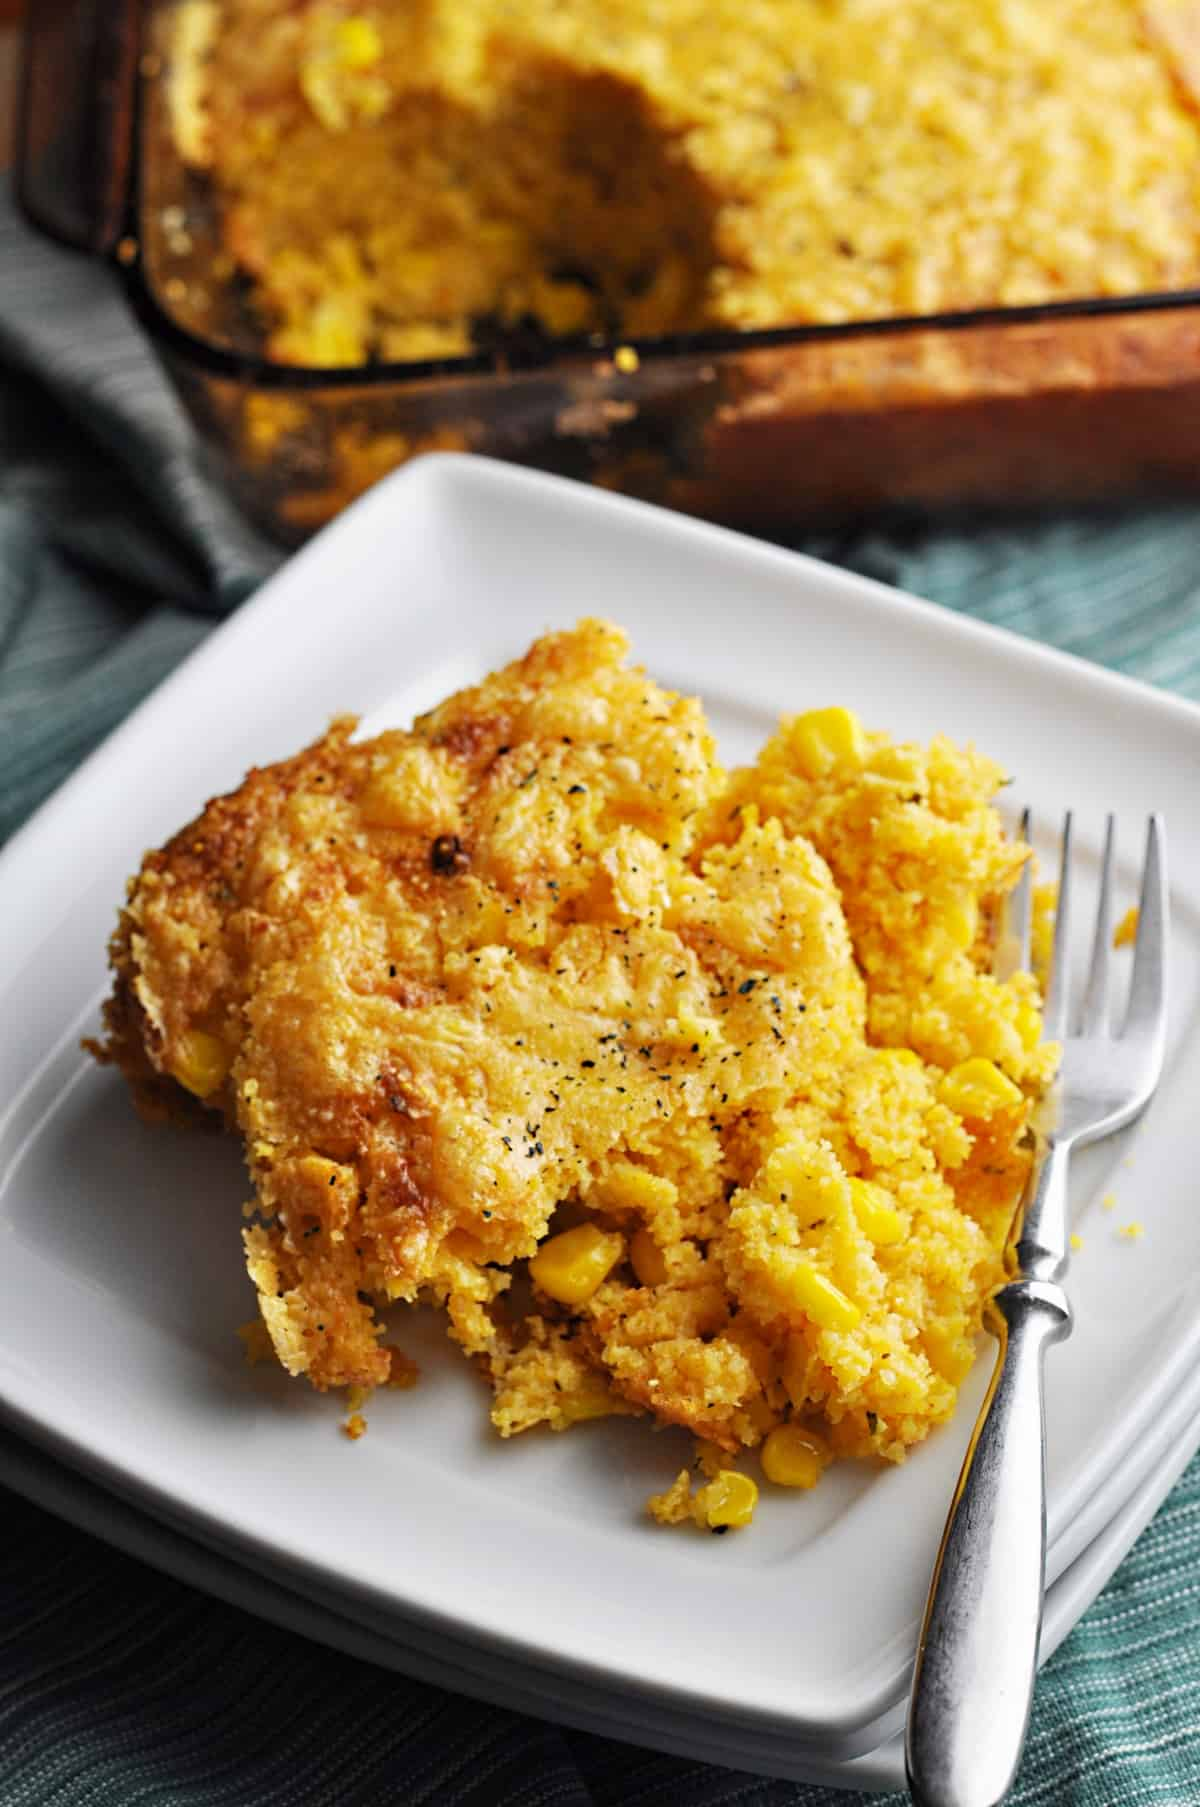 Casserole with corn on plate fresh from oven